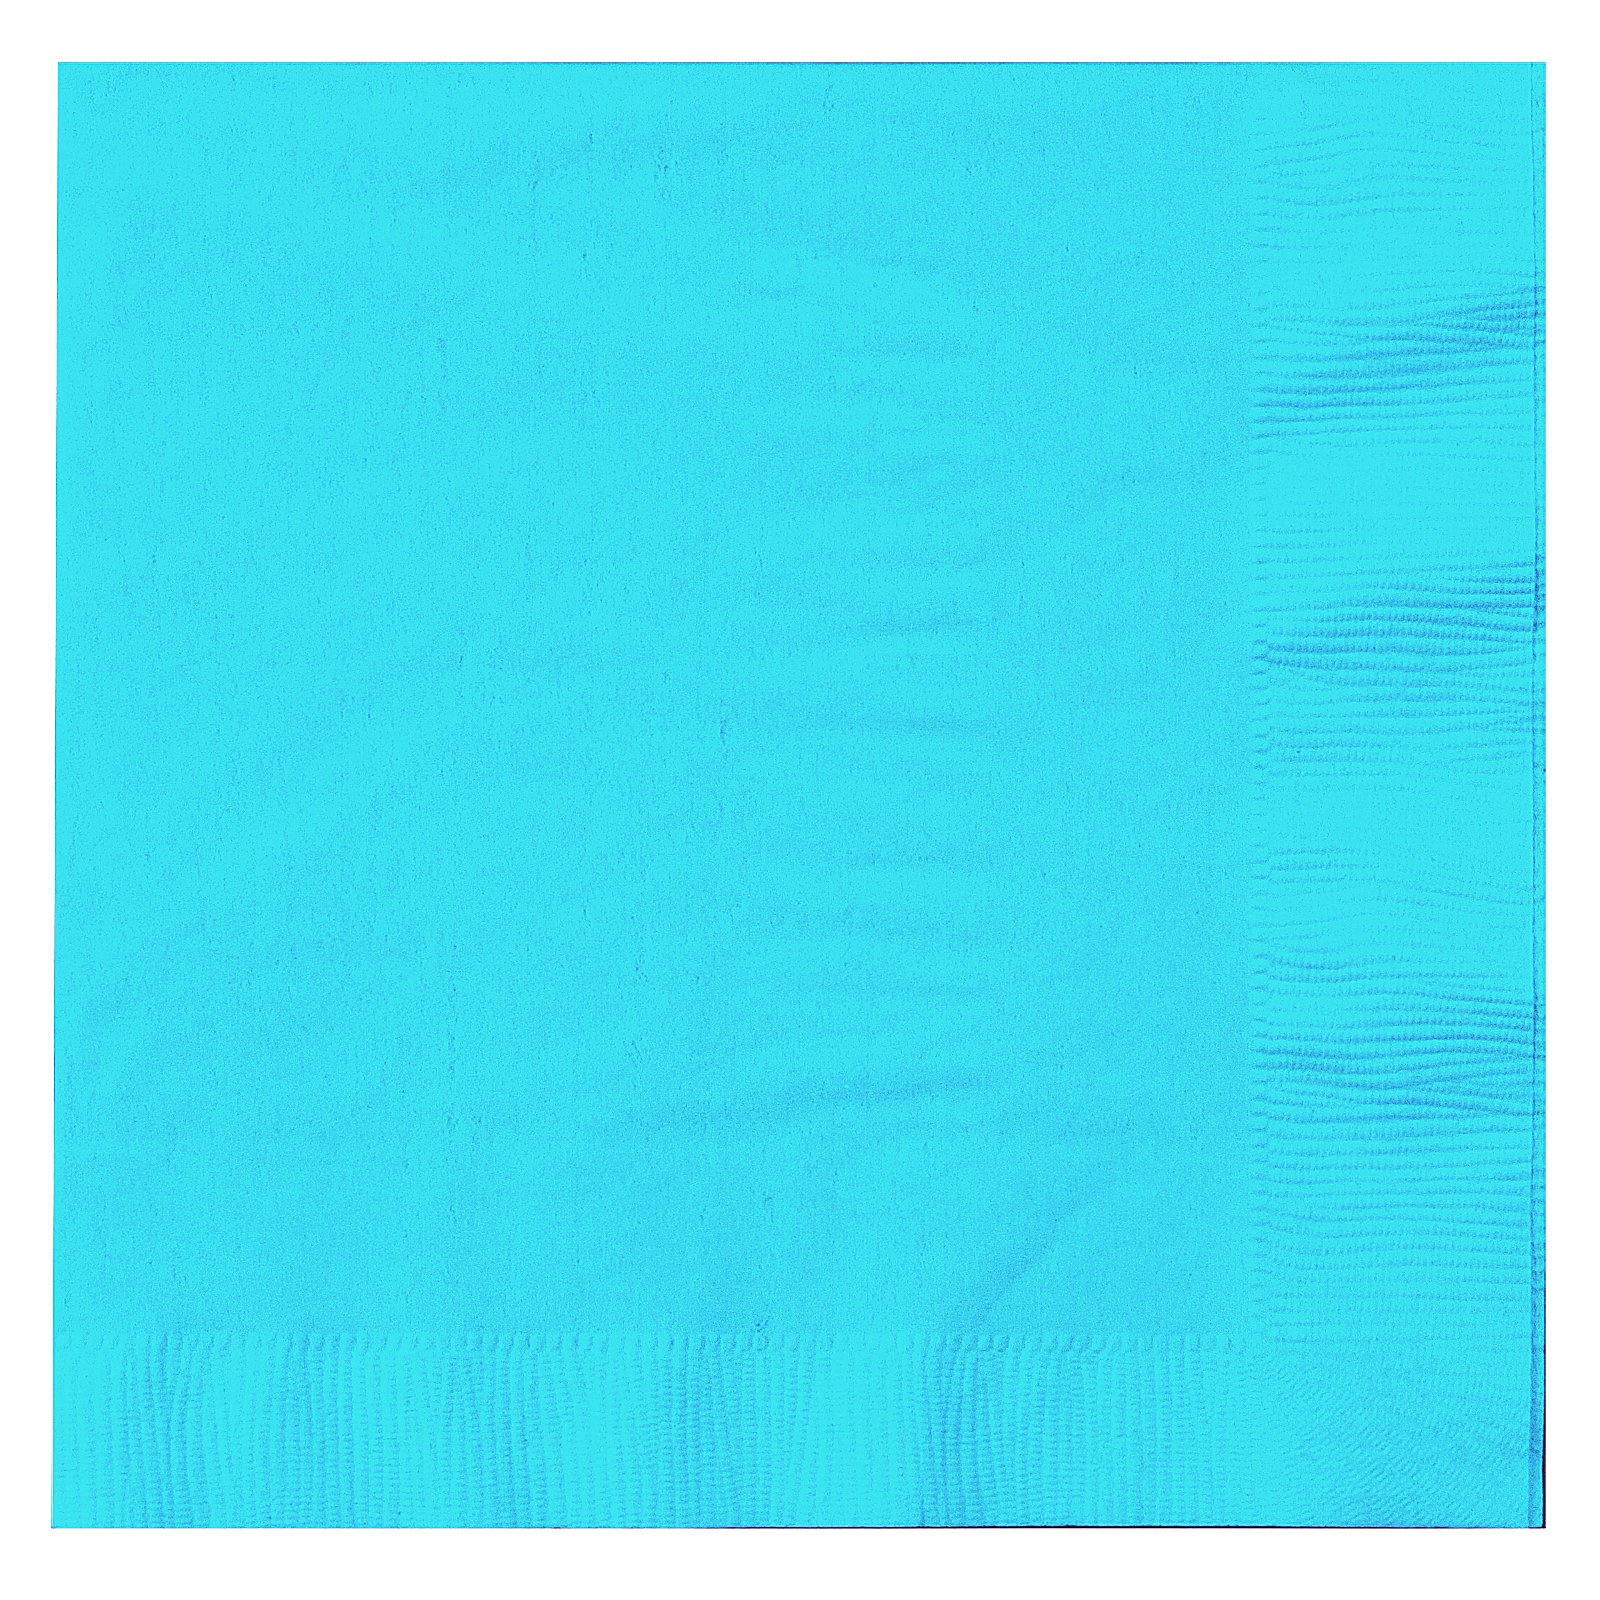 Bermuda Blue (Turquoise) Lunch Napkins (50 count)